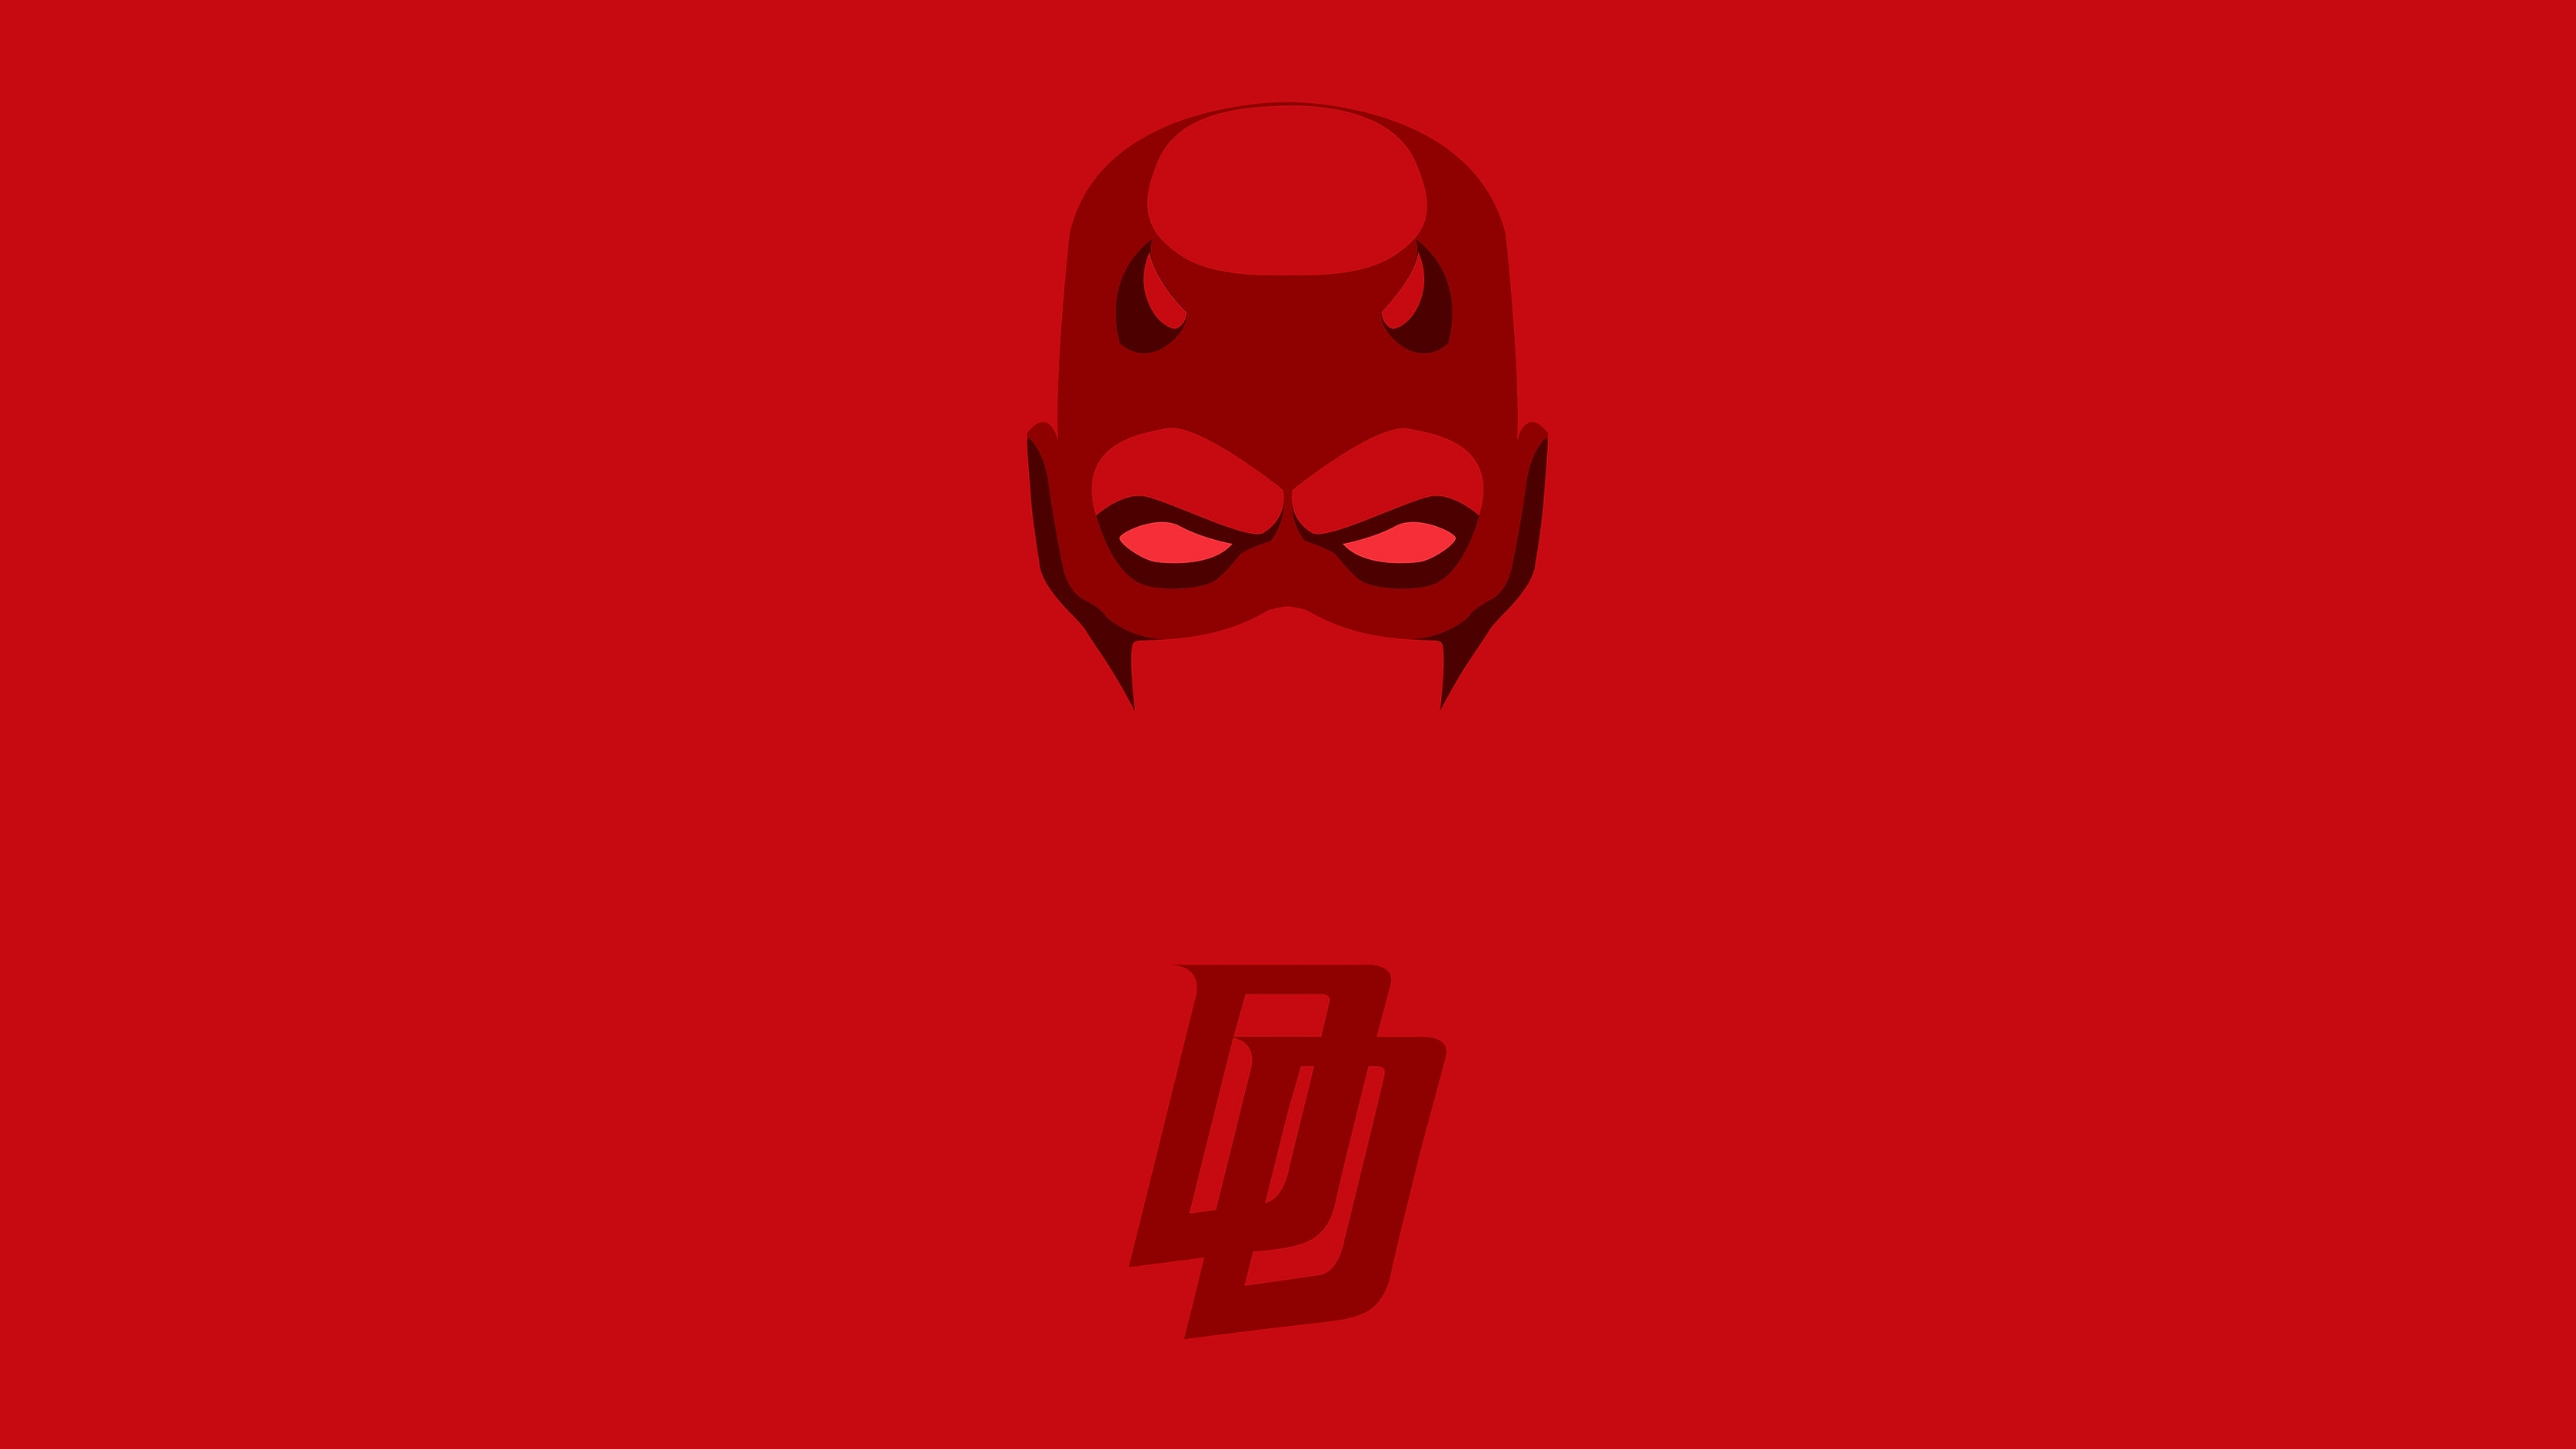 Devil 3d Hd Wallpapers Daredevil Minimalism Hd Tv Shows 4k Wallpapers Images